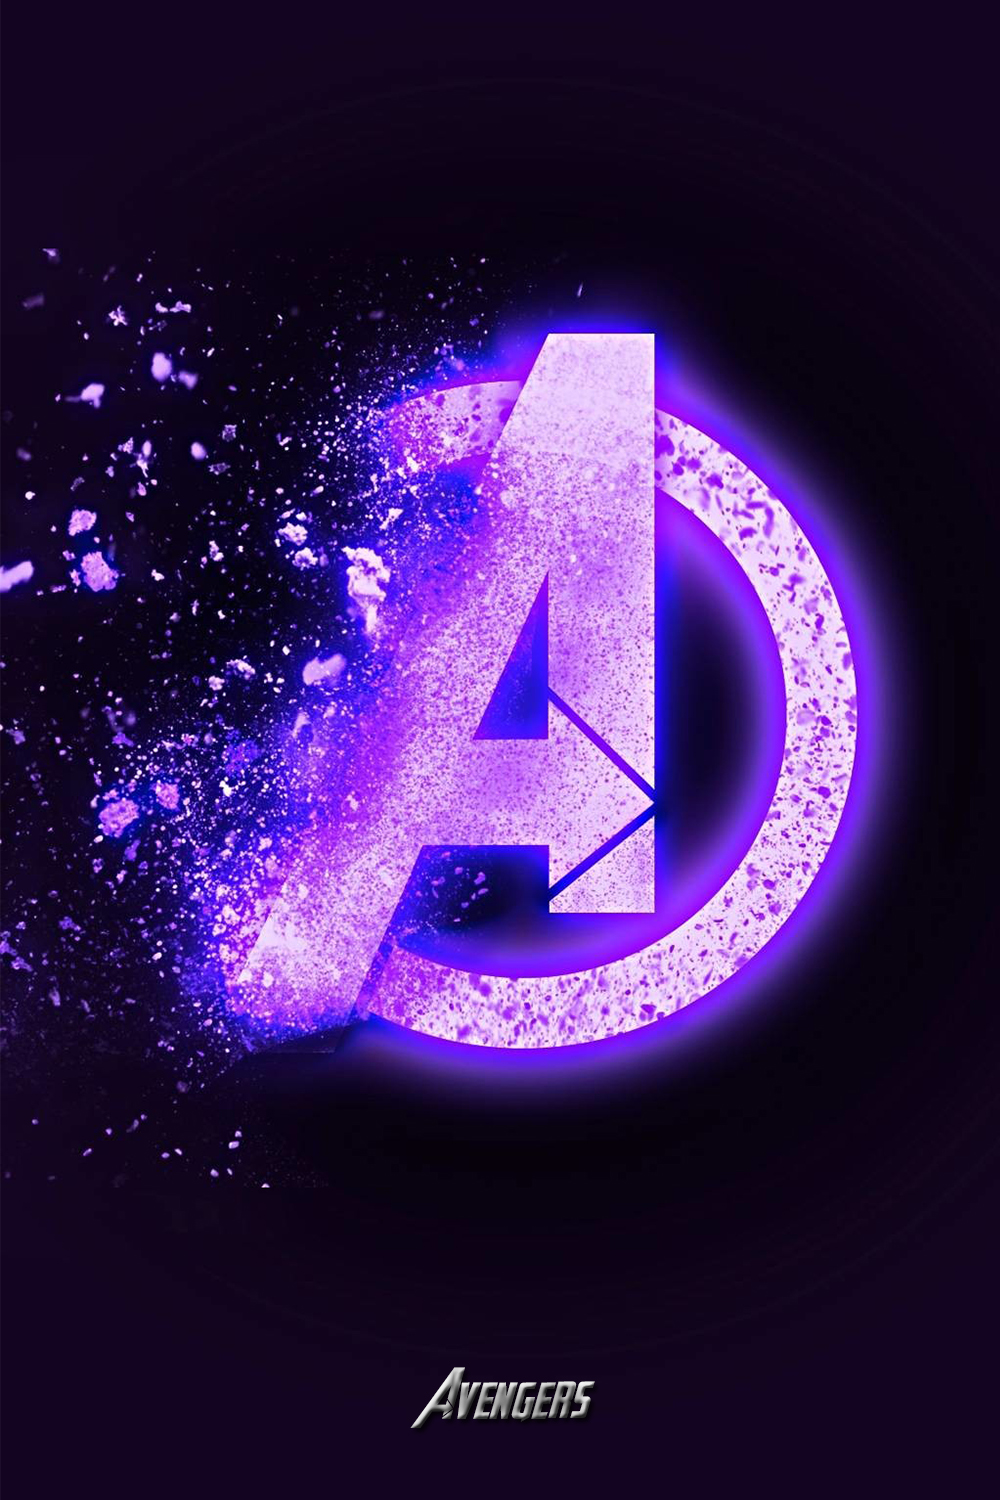 Best Avengers Wallpaper 4k Free Download in 2020